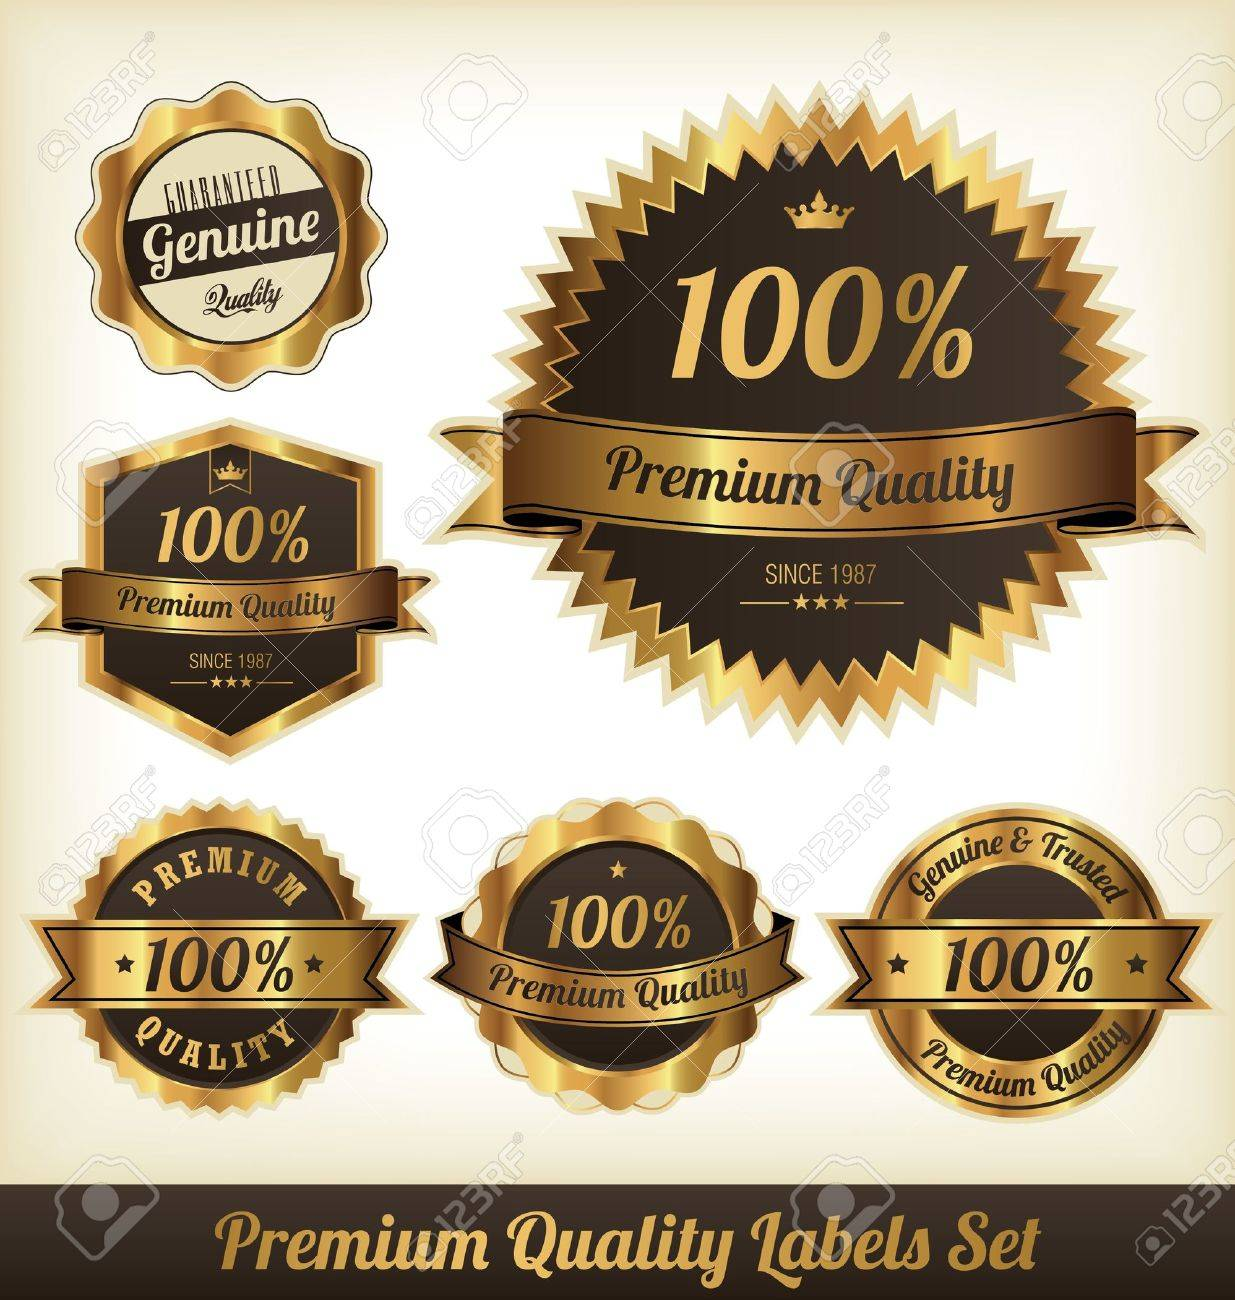 Premium Stock Photos premium Premium Quality